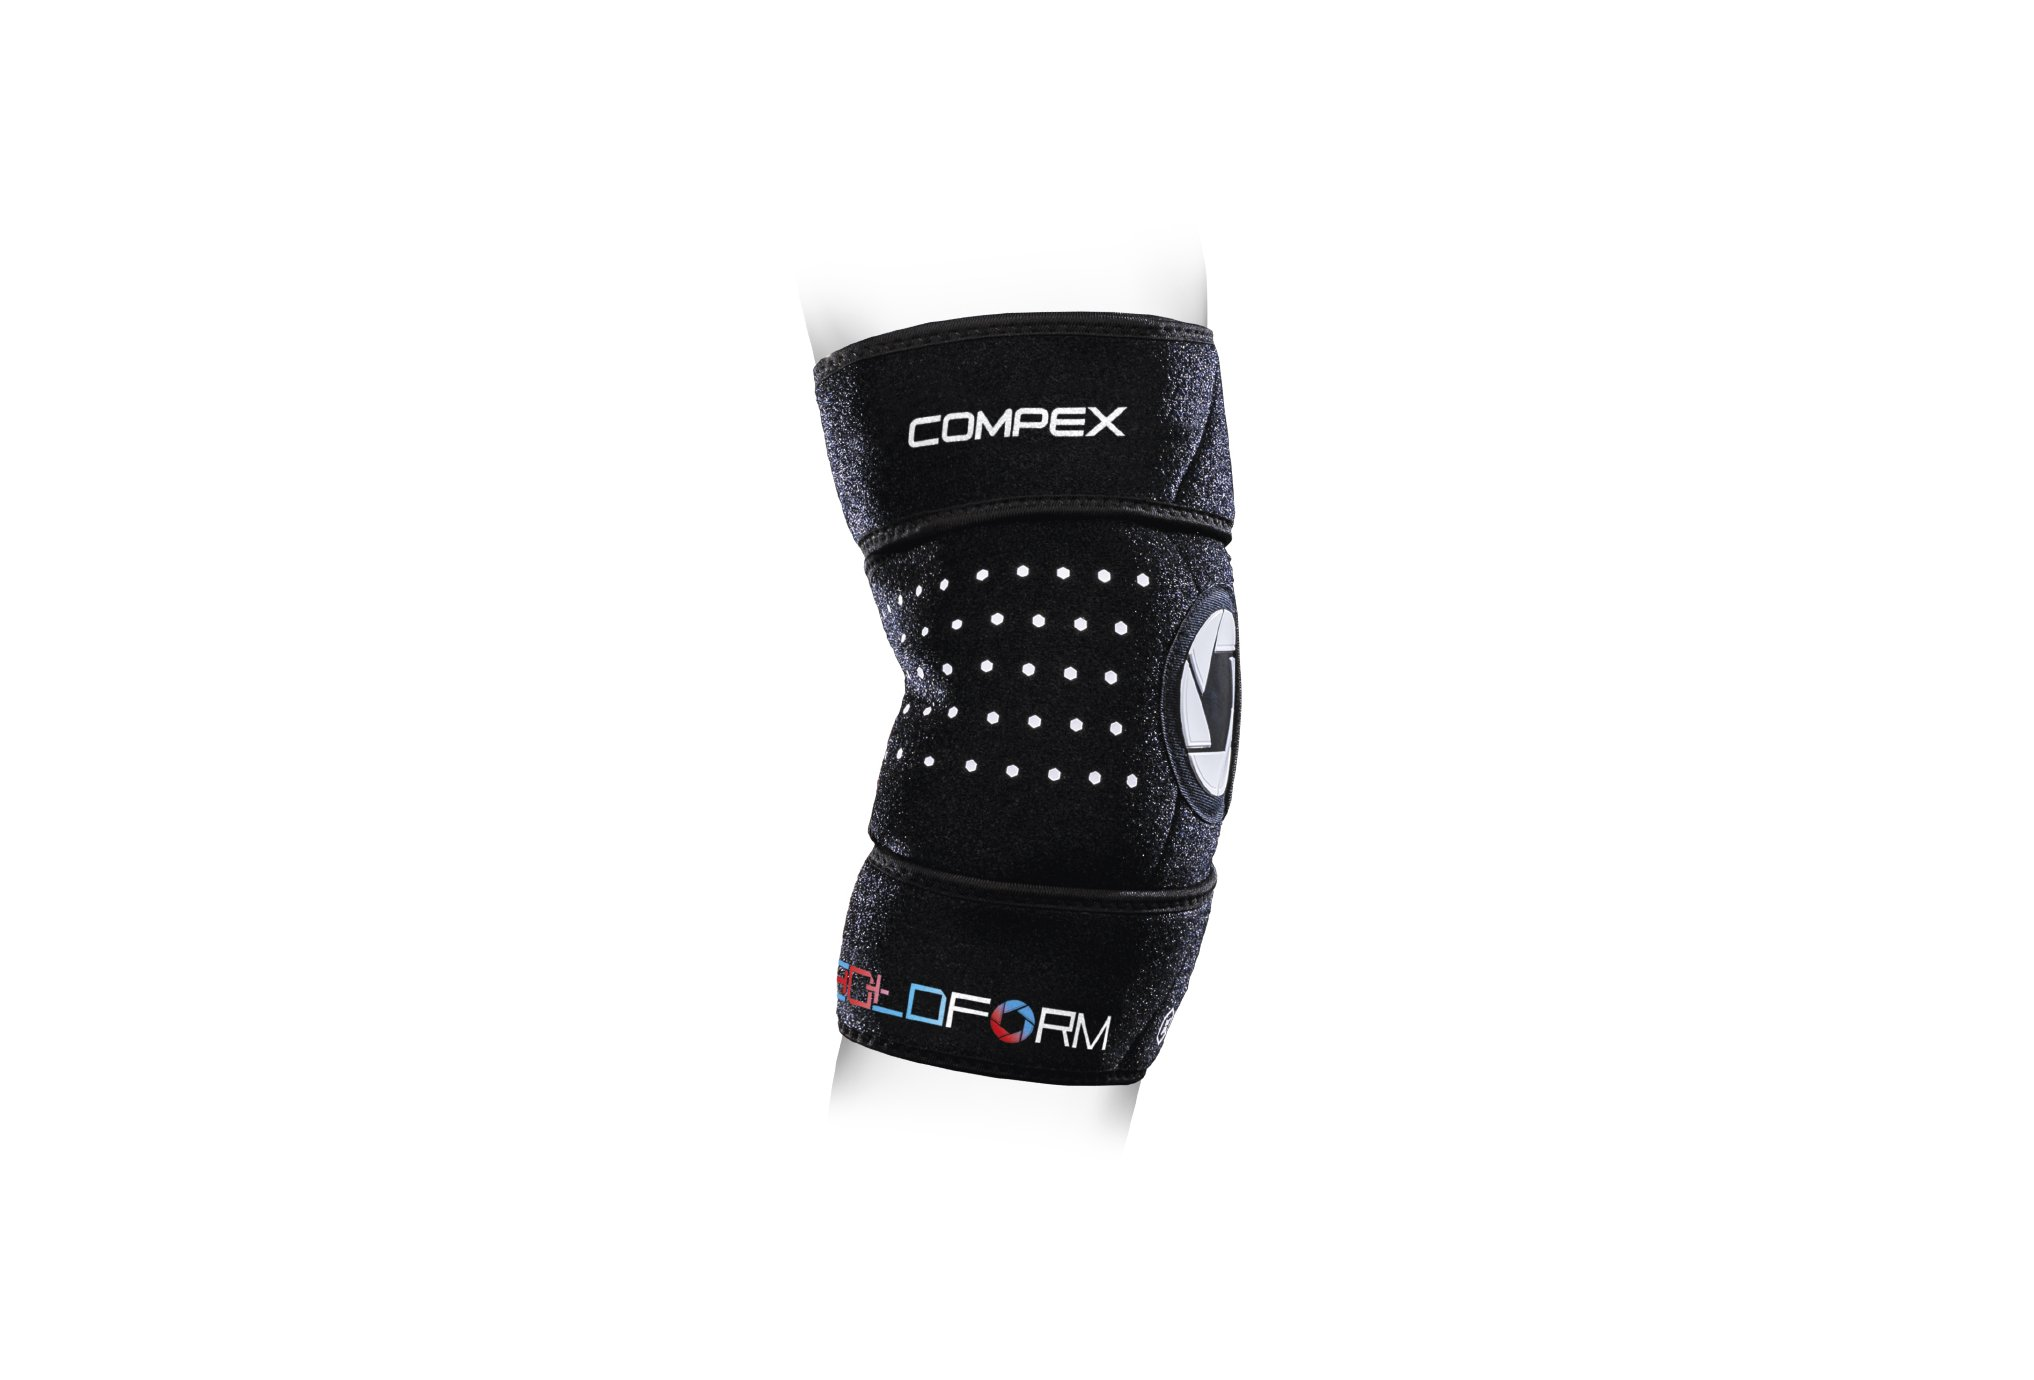 Compex Coldform Utility Protection musculaire & articulaire